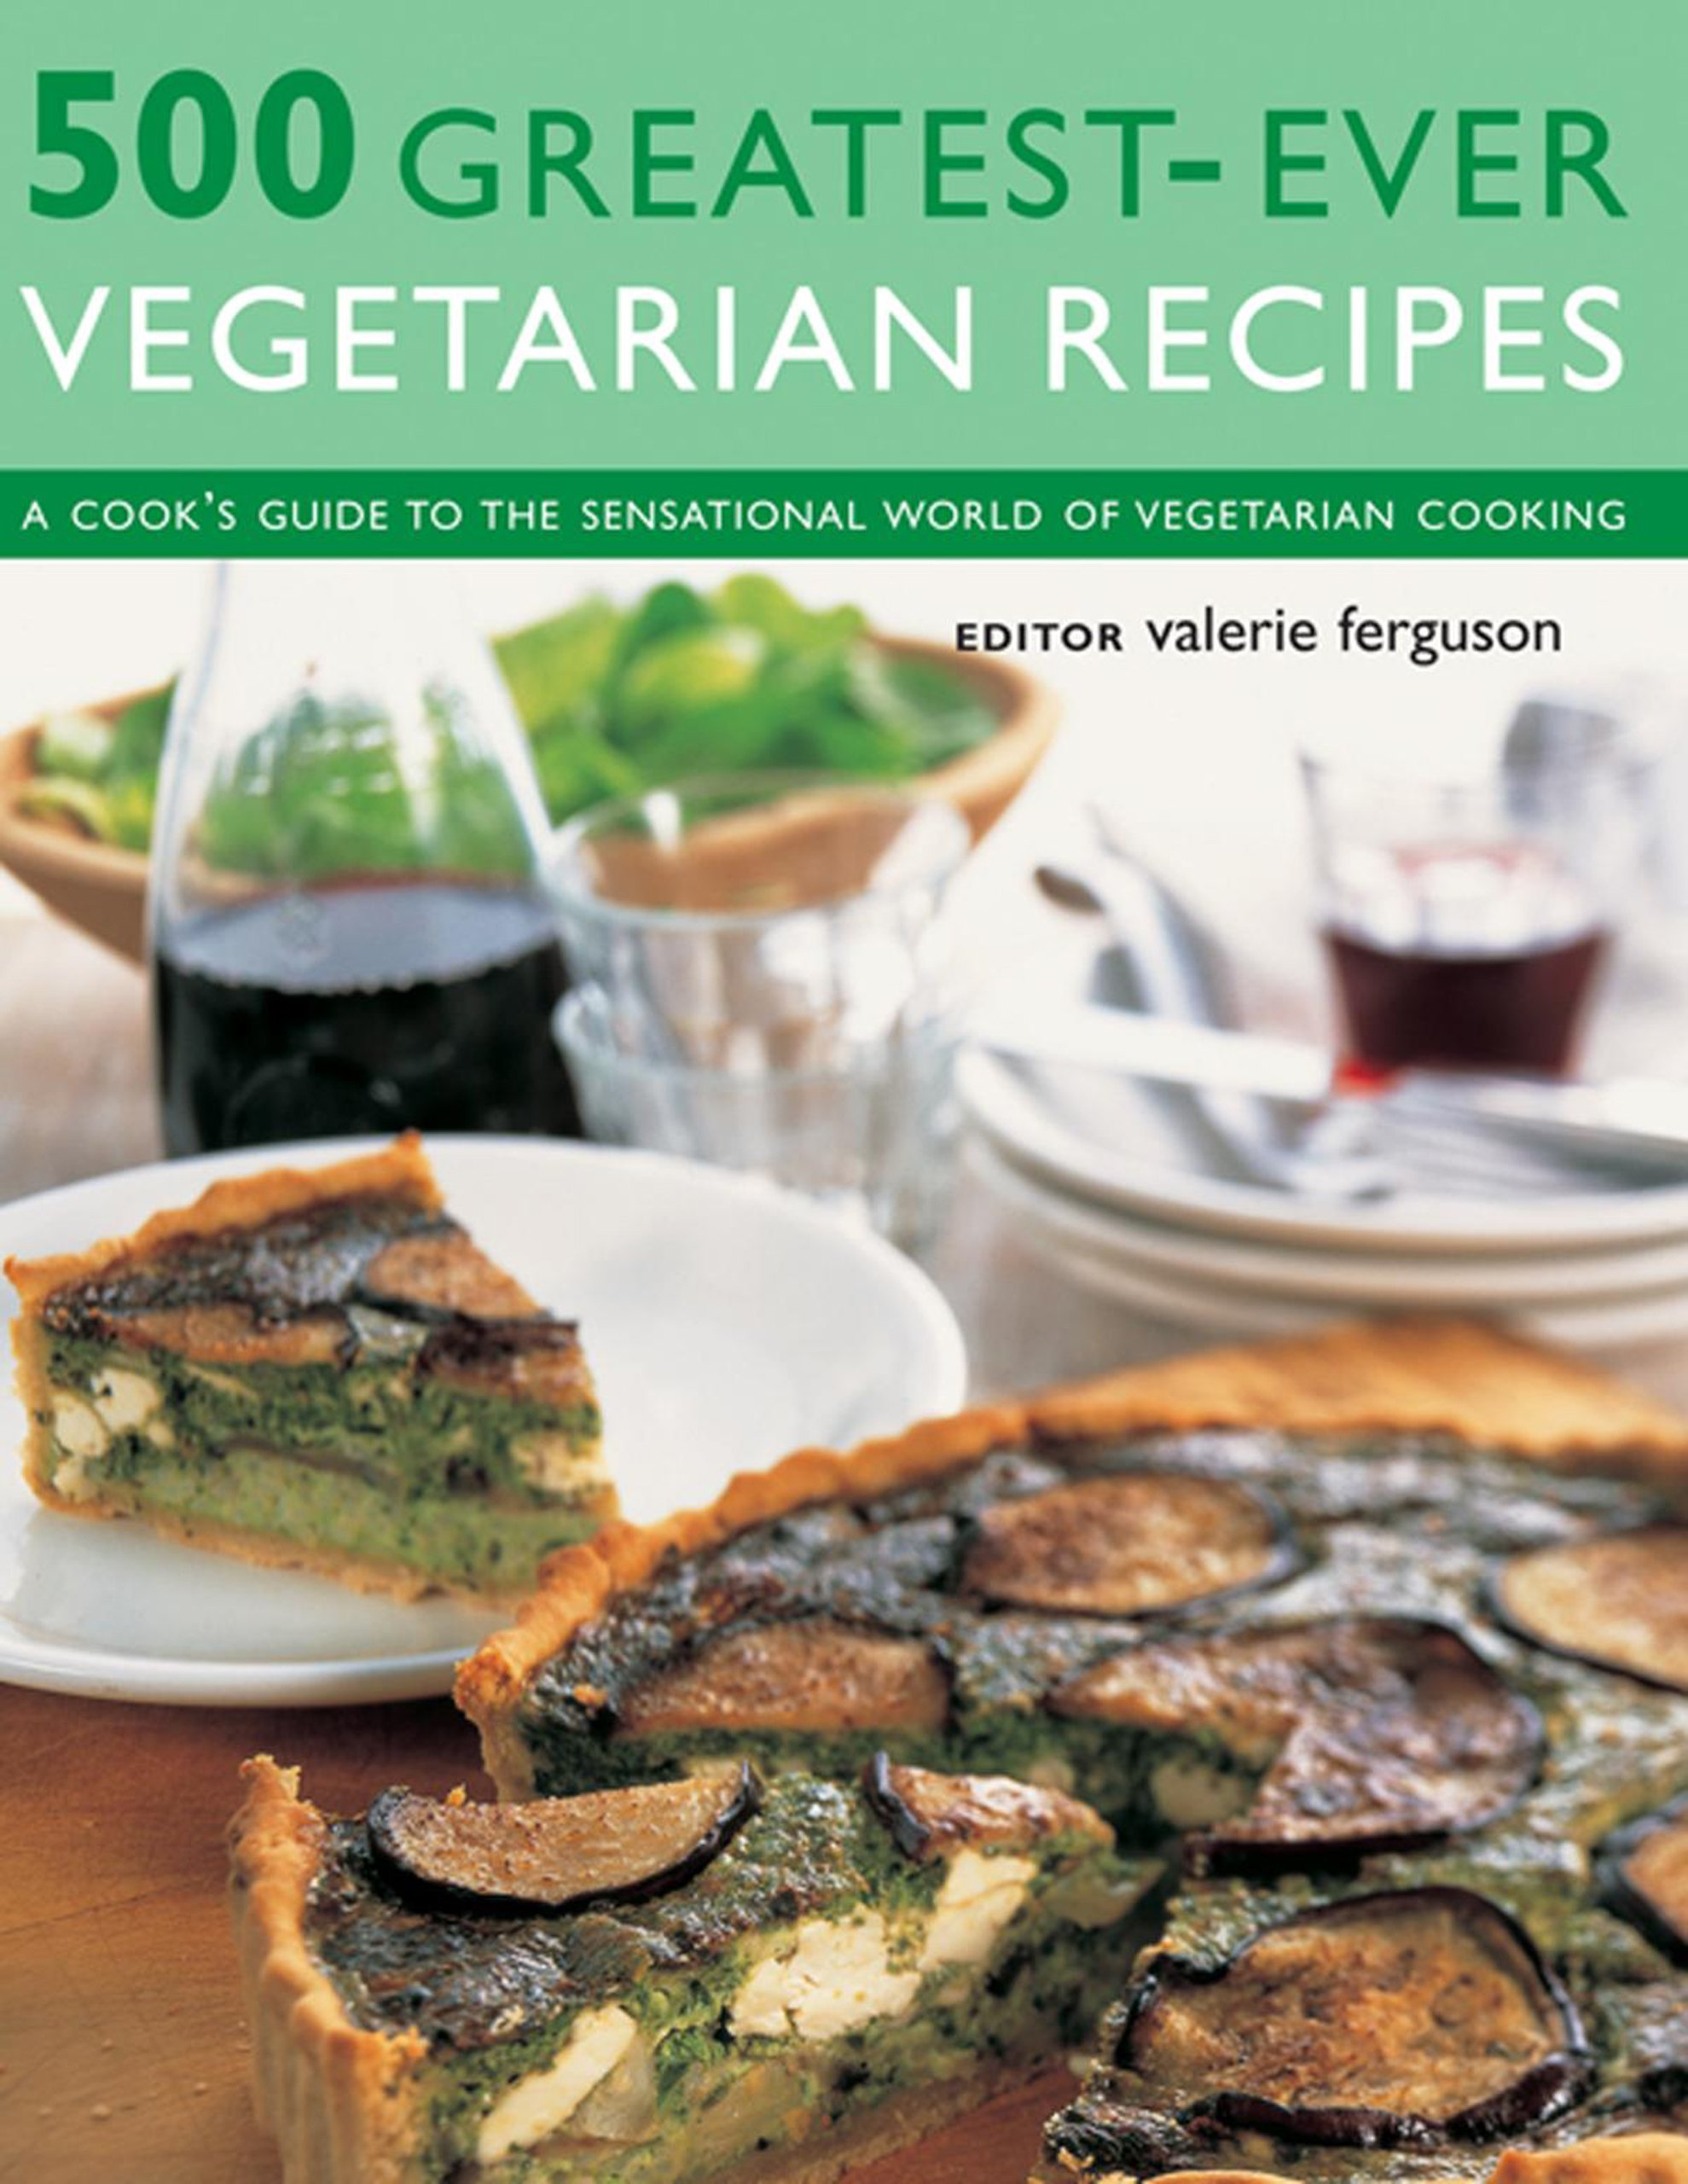 500 Greatest-Ever Vegetarian Recipes: A Cook'S Guide To The Sensational World Of Vegetarian Cooking pdf epub